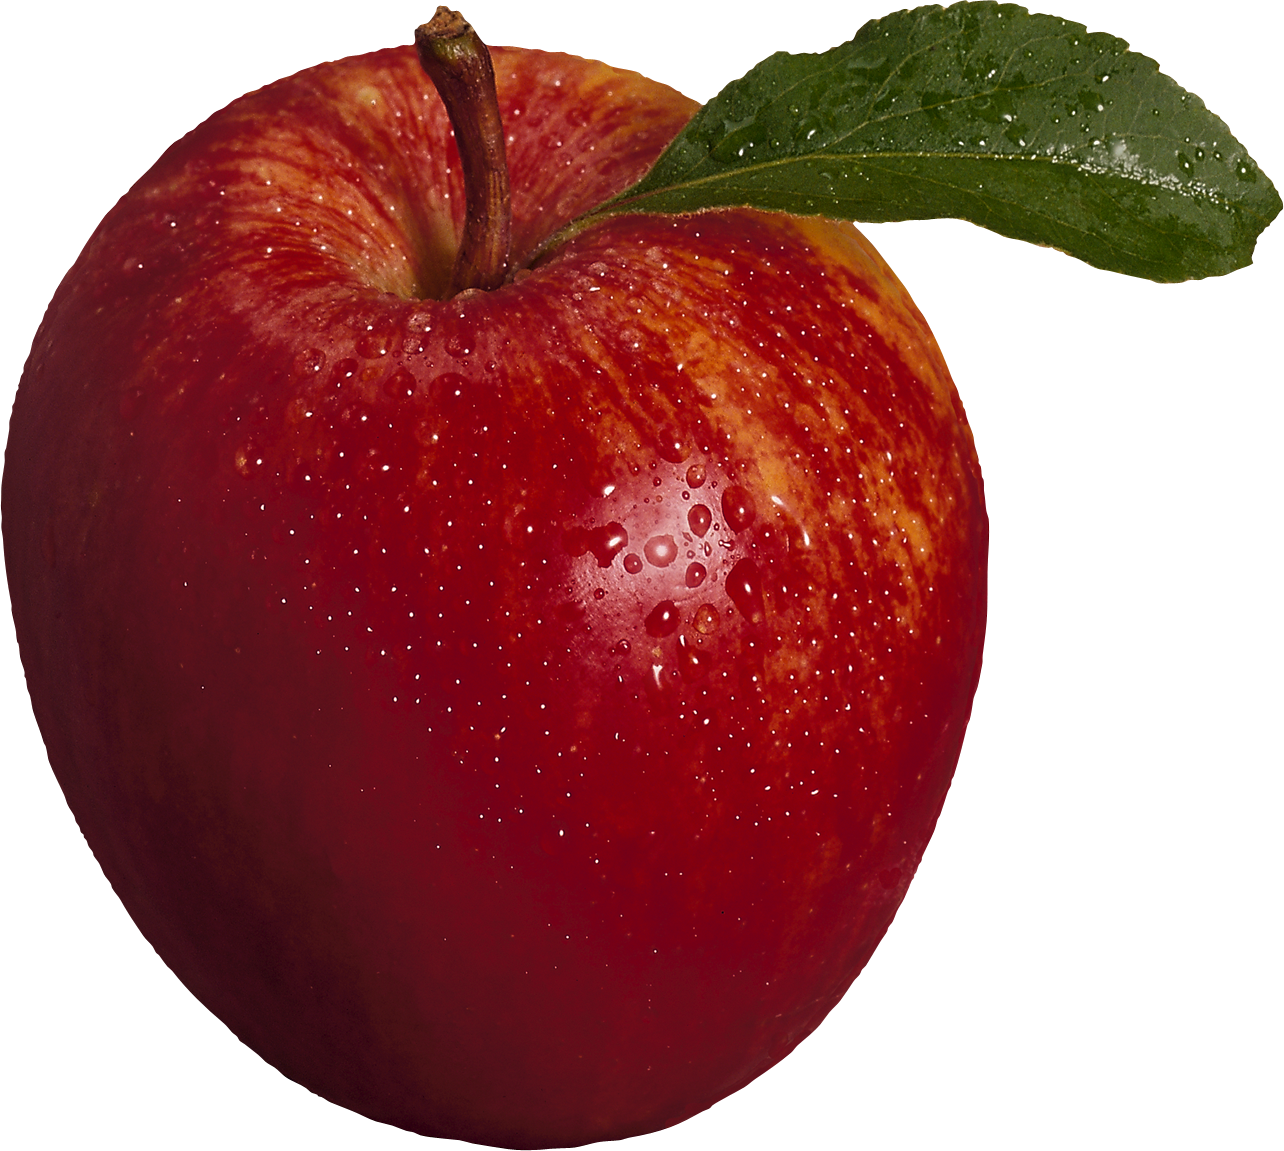 Png apples. Apple images